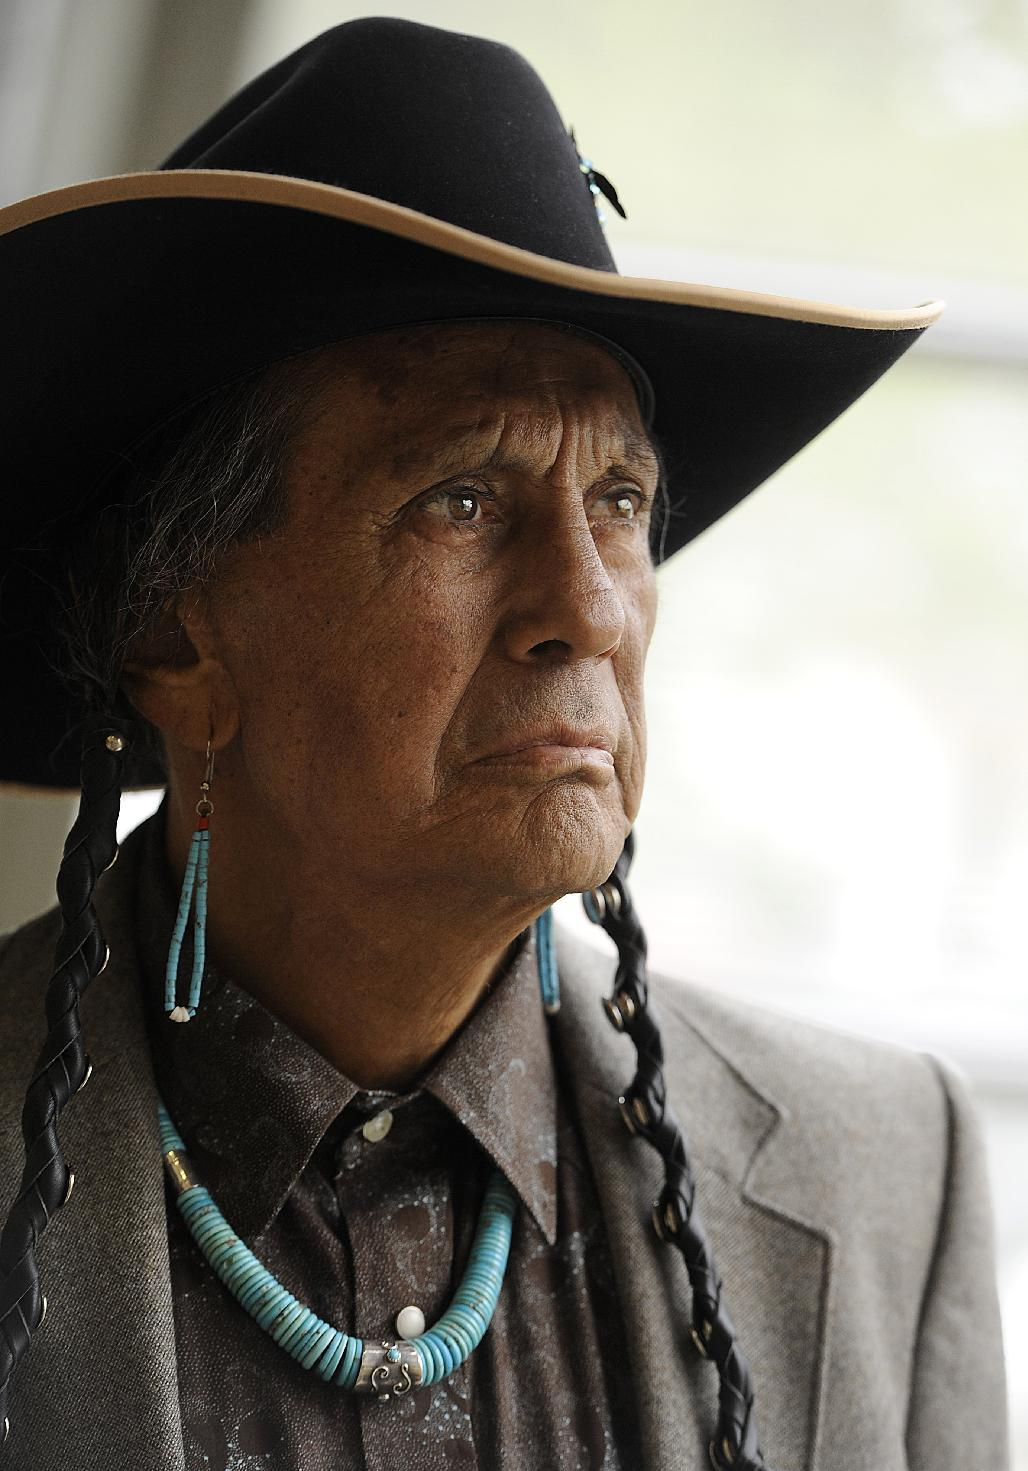 FILE - In a Friday, April 27, 2012 file photo, Russell Means, former leader of the American Indian Movement, (AIM) poses for a portrait at Augustana College in Sioux Falls, S.D. Means, a former American Indian Movement activist who helped lead the 1973 uprising at Wounded Knee, reveled in stirring up attention and appeared in several Hollywood films, died early Monday, Oct. 22, 2012 at his ranch in in Porcupine, S.D., Oglala Sioux Tribe spokeswoman Donna Solomon said. He was 72. (AP Photo/Argus Leader Jay Pickthorn) NO SALES